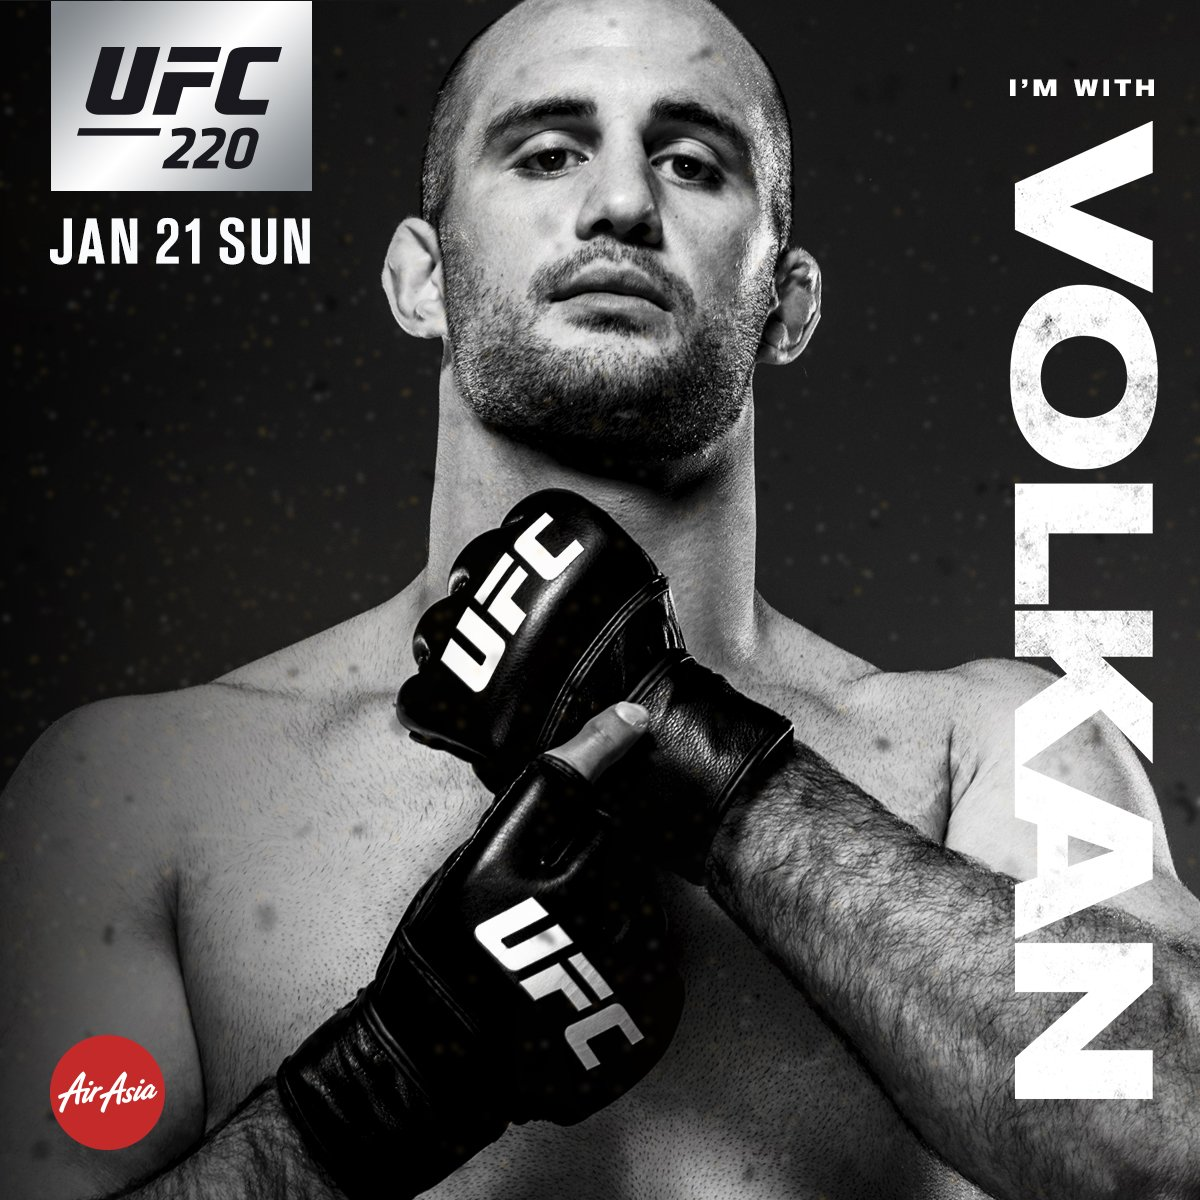 """RT @UFC_Asia: """"When the bell rings, I'm going to knock you out."""" @Volkan_Oezdemir #AndNew #UFC220 https://t.co/9oHboAdGSk"""